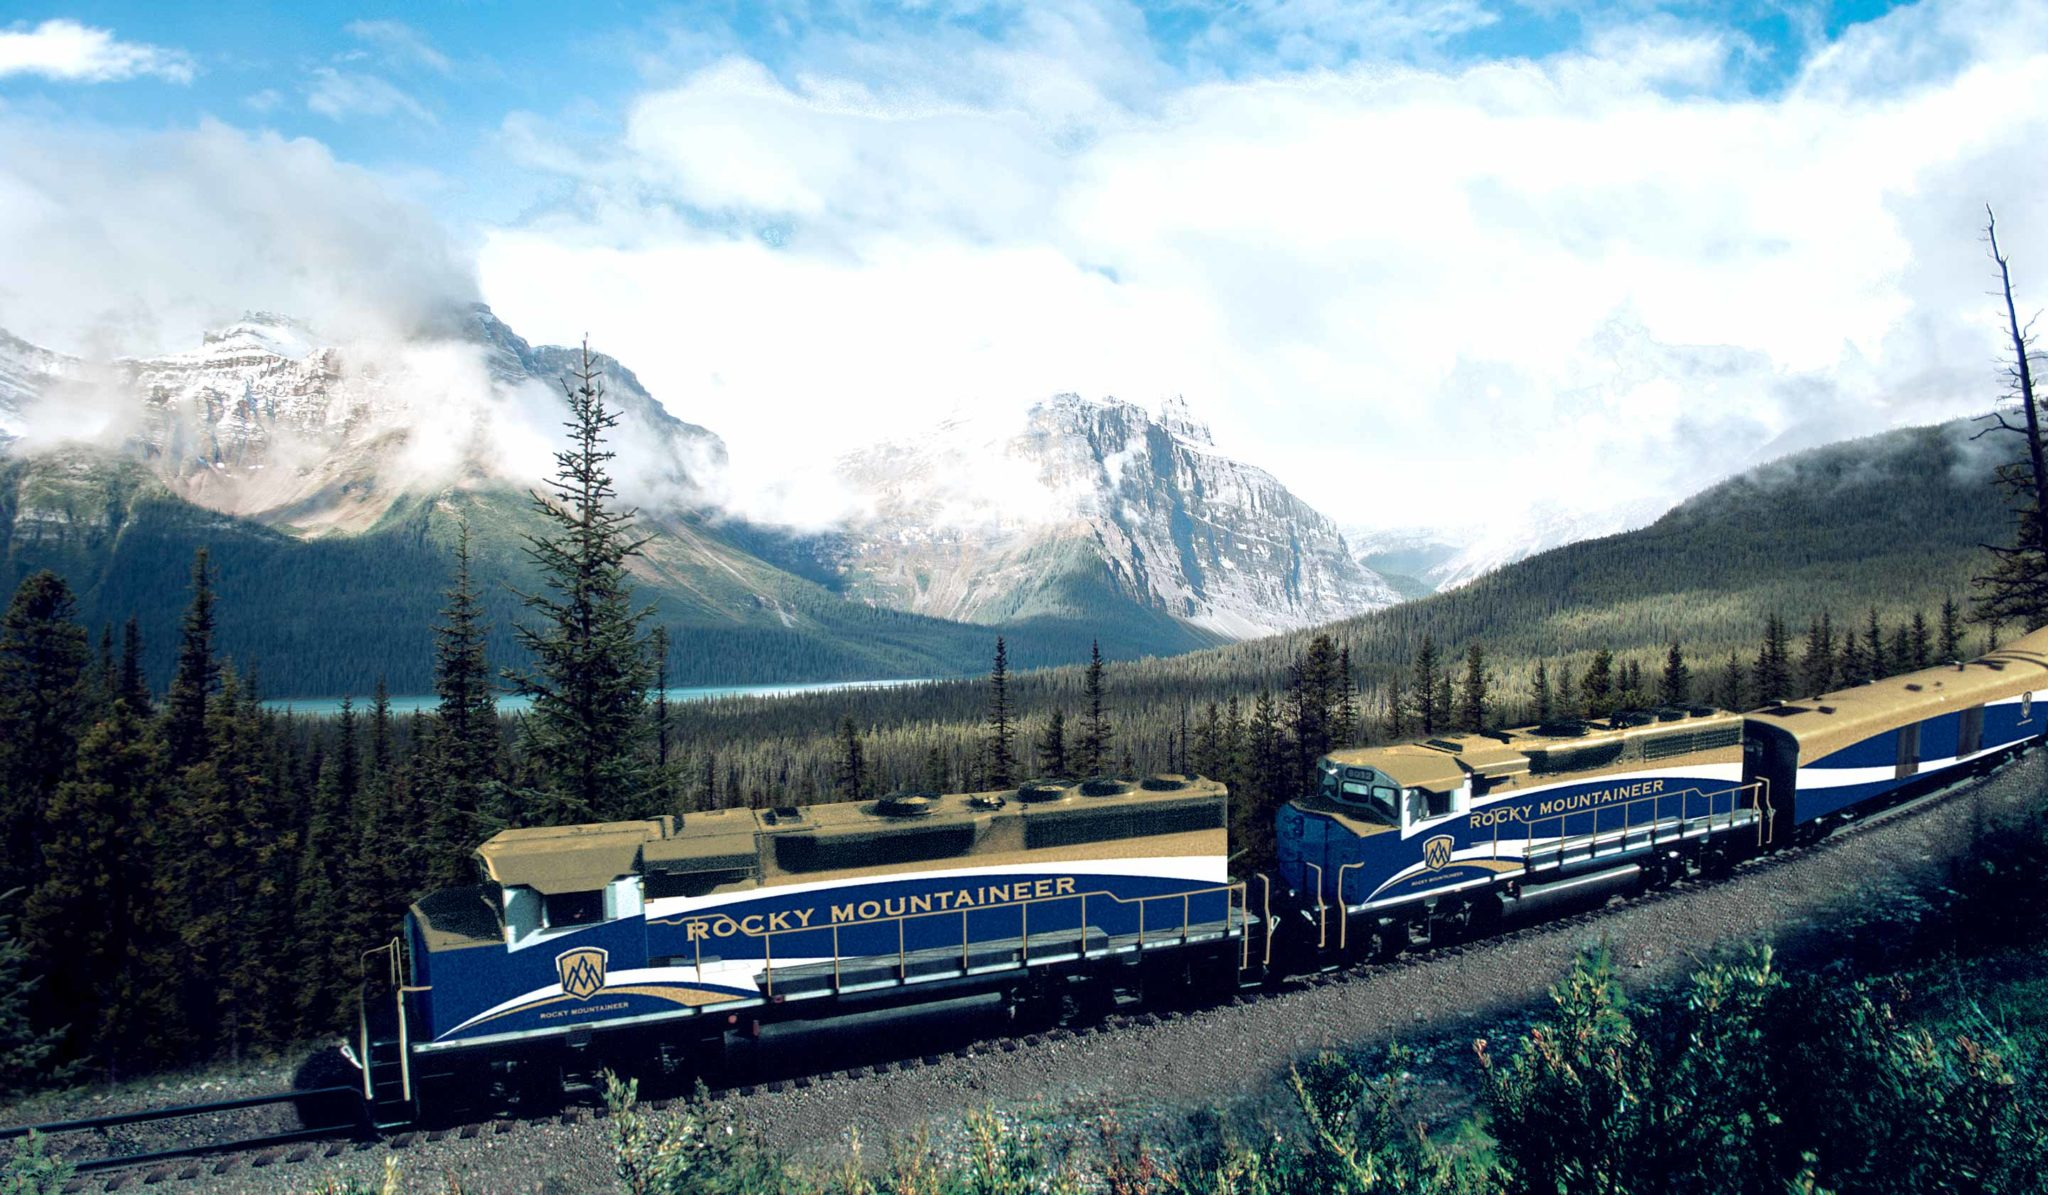 Best Selling Packages – Rocky Mountaineer